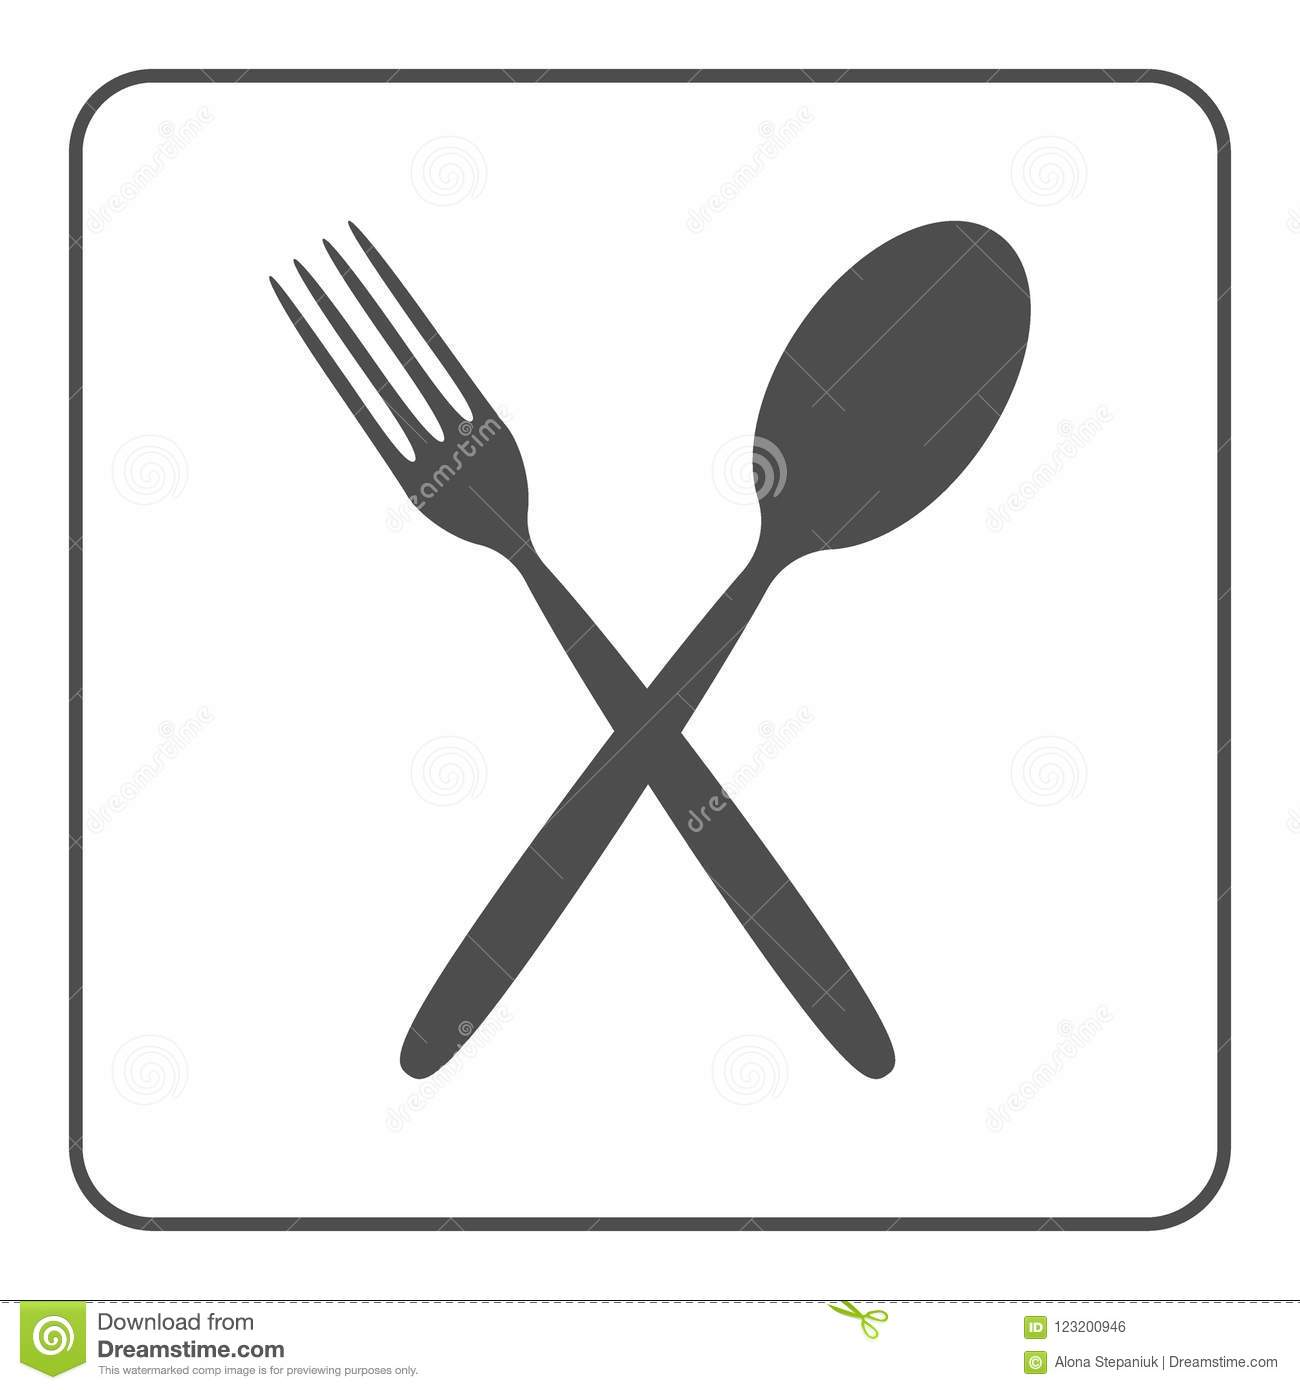 Crossed Spoon And Fork Icon Stock Vector Illustration Of Object